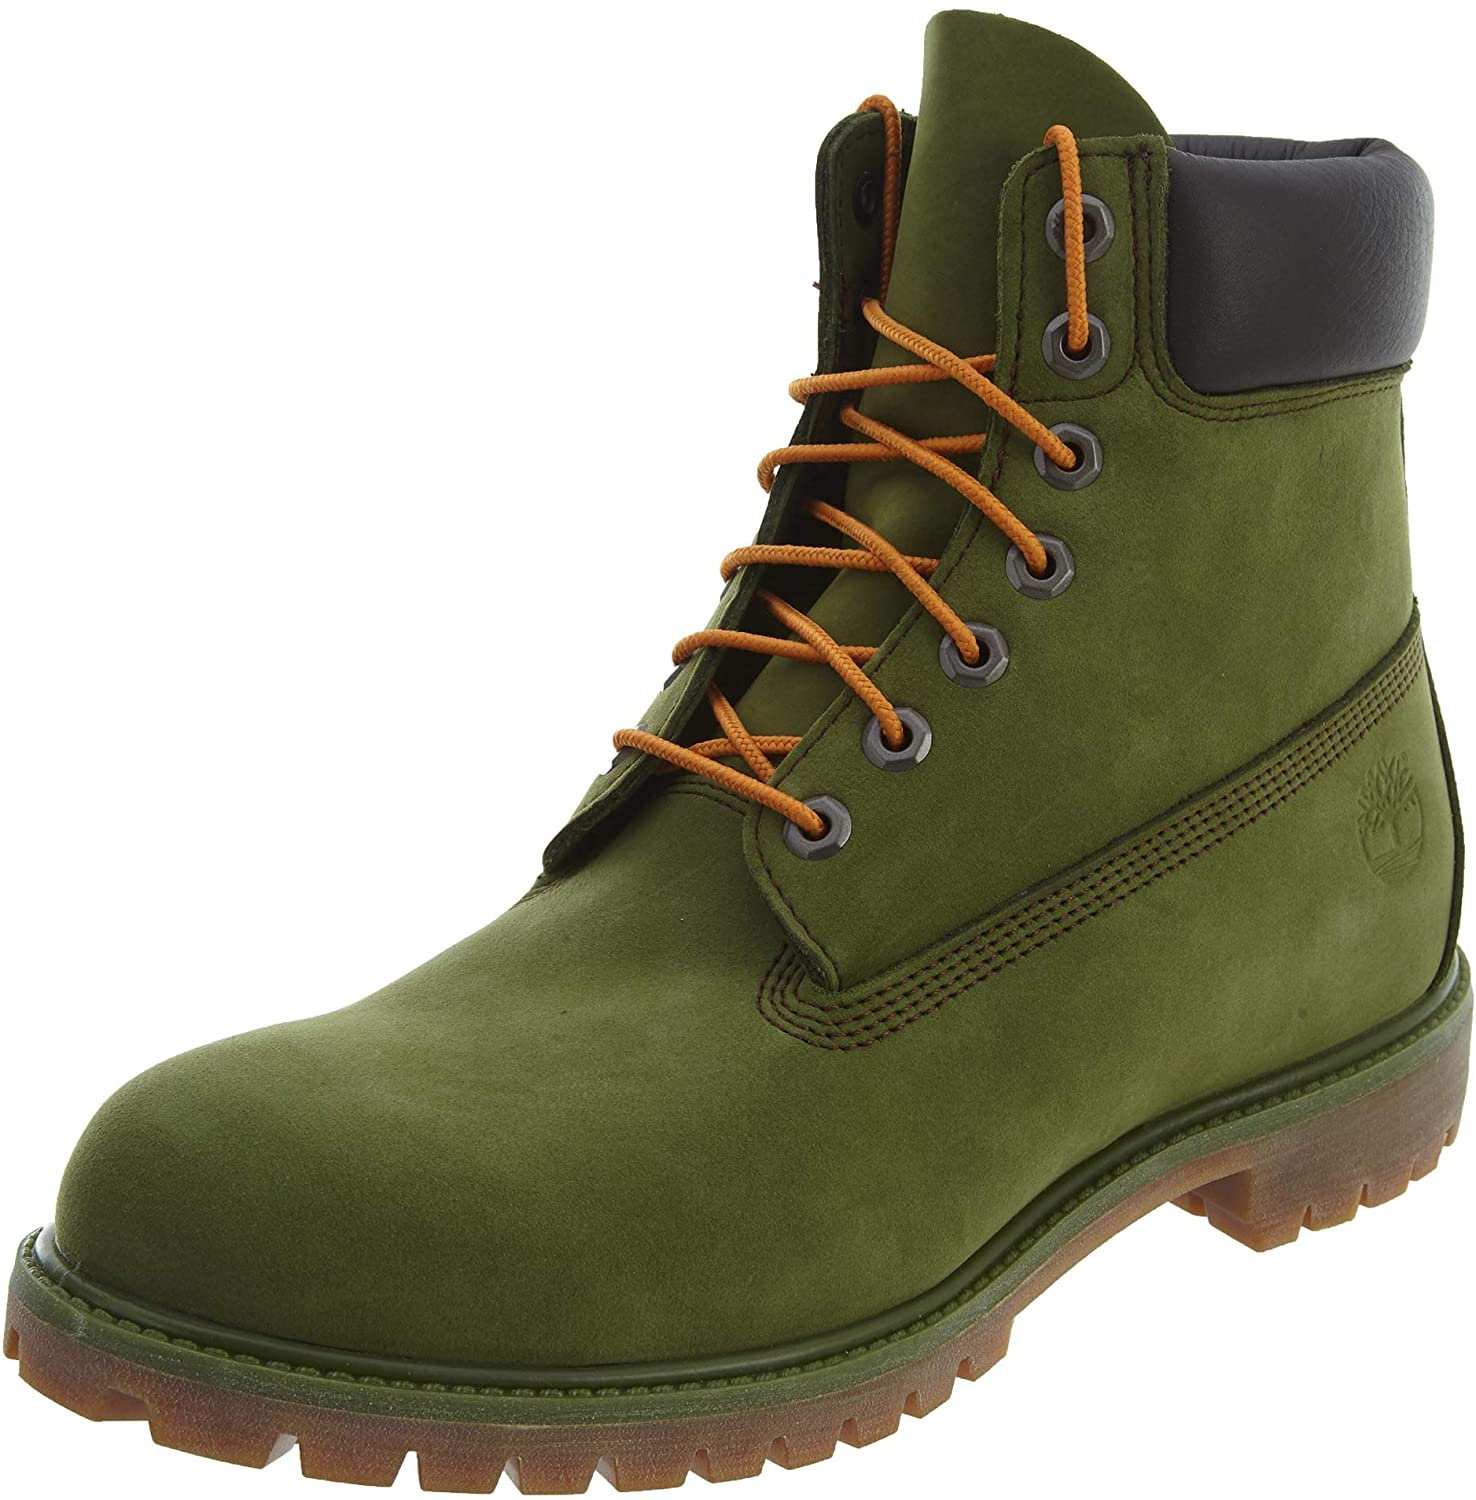 Timberland 6 Inch Premium Mens Boots Green tb0a1m72